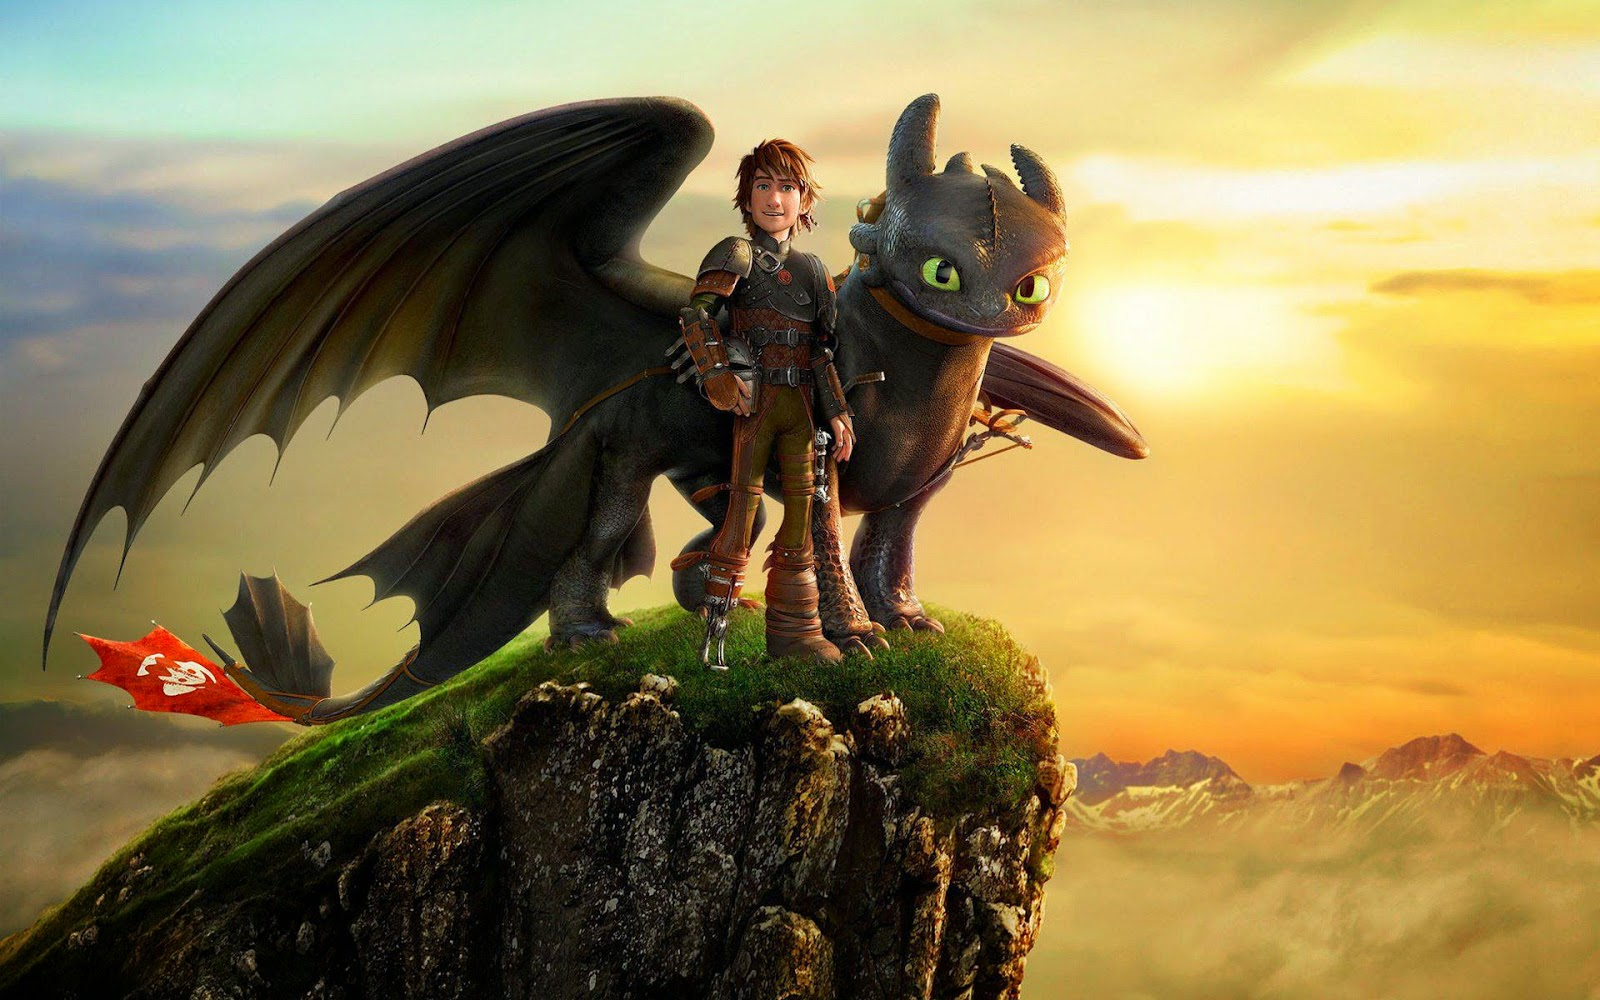 How to train your dragon episode 1 and 2 girls united gib alles how to train your dragon 2 subtitles english aka gy neveld a srknyod 2 2 como treinar o seu drago 2 ejdahani ccuart Images